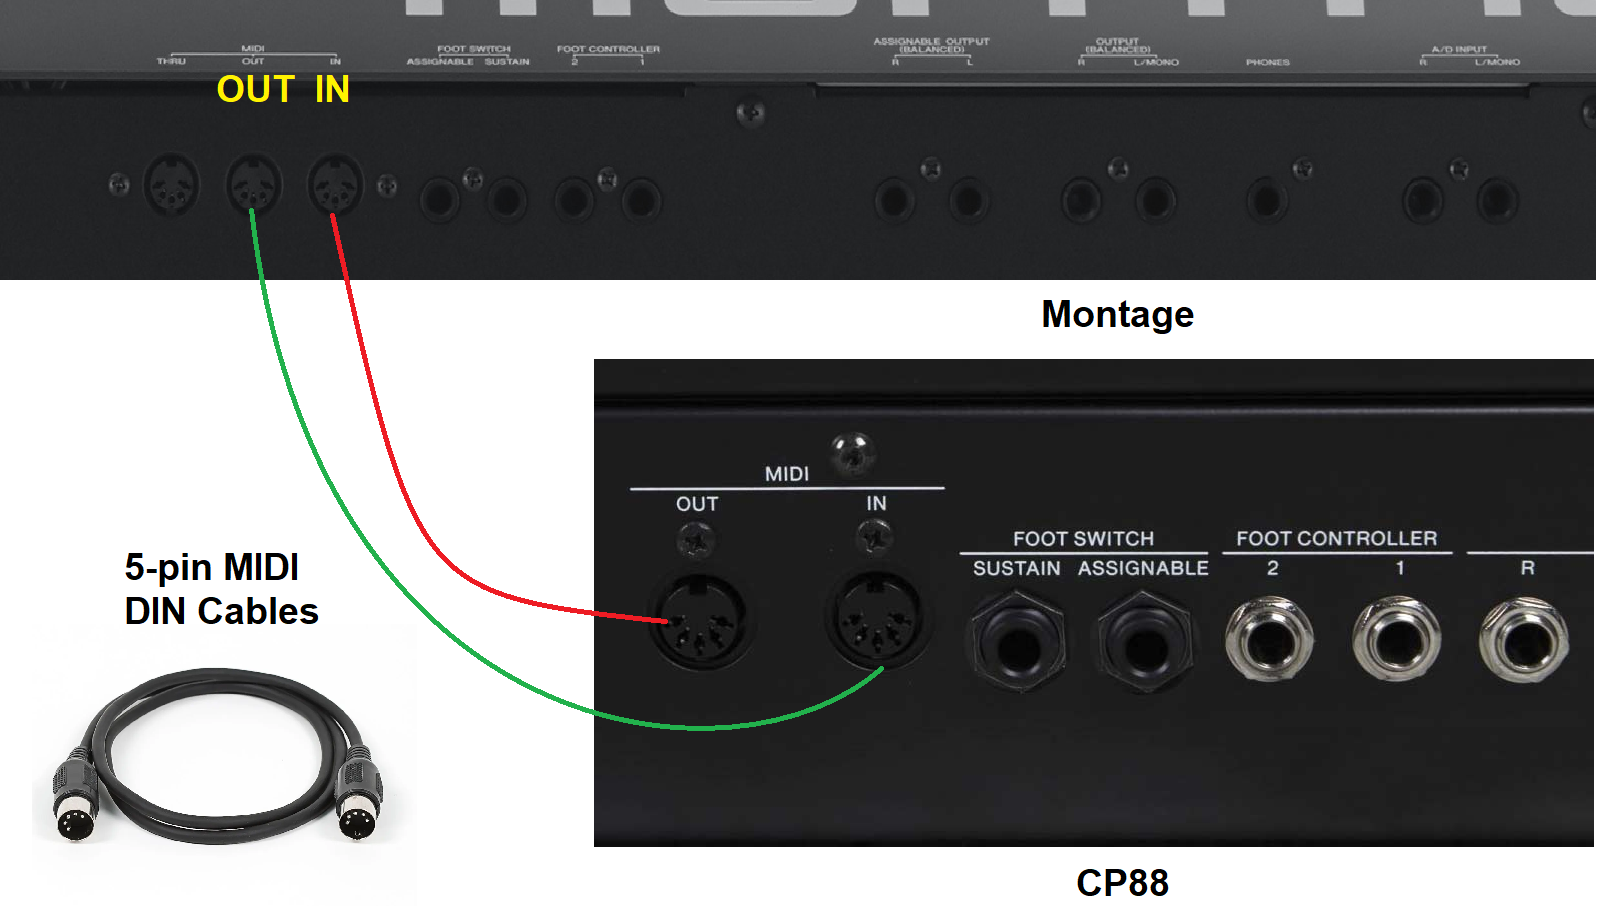 https://i.ibb.co/23Cq5zx/Montage-To-CP88-MIDI-Connection.png